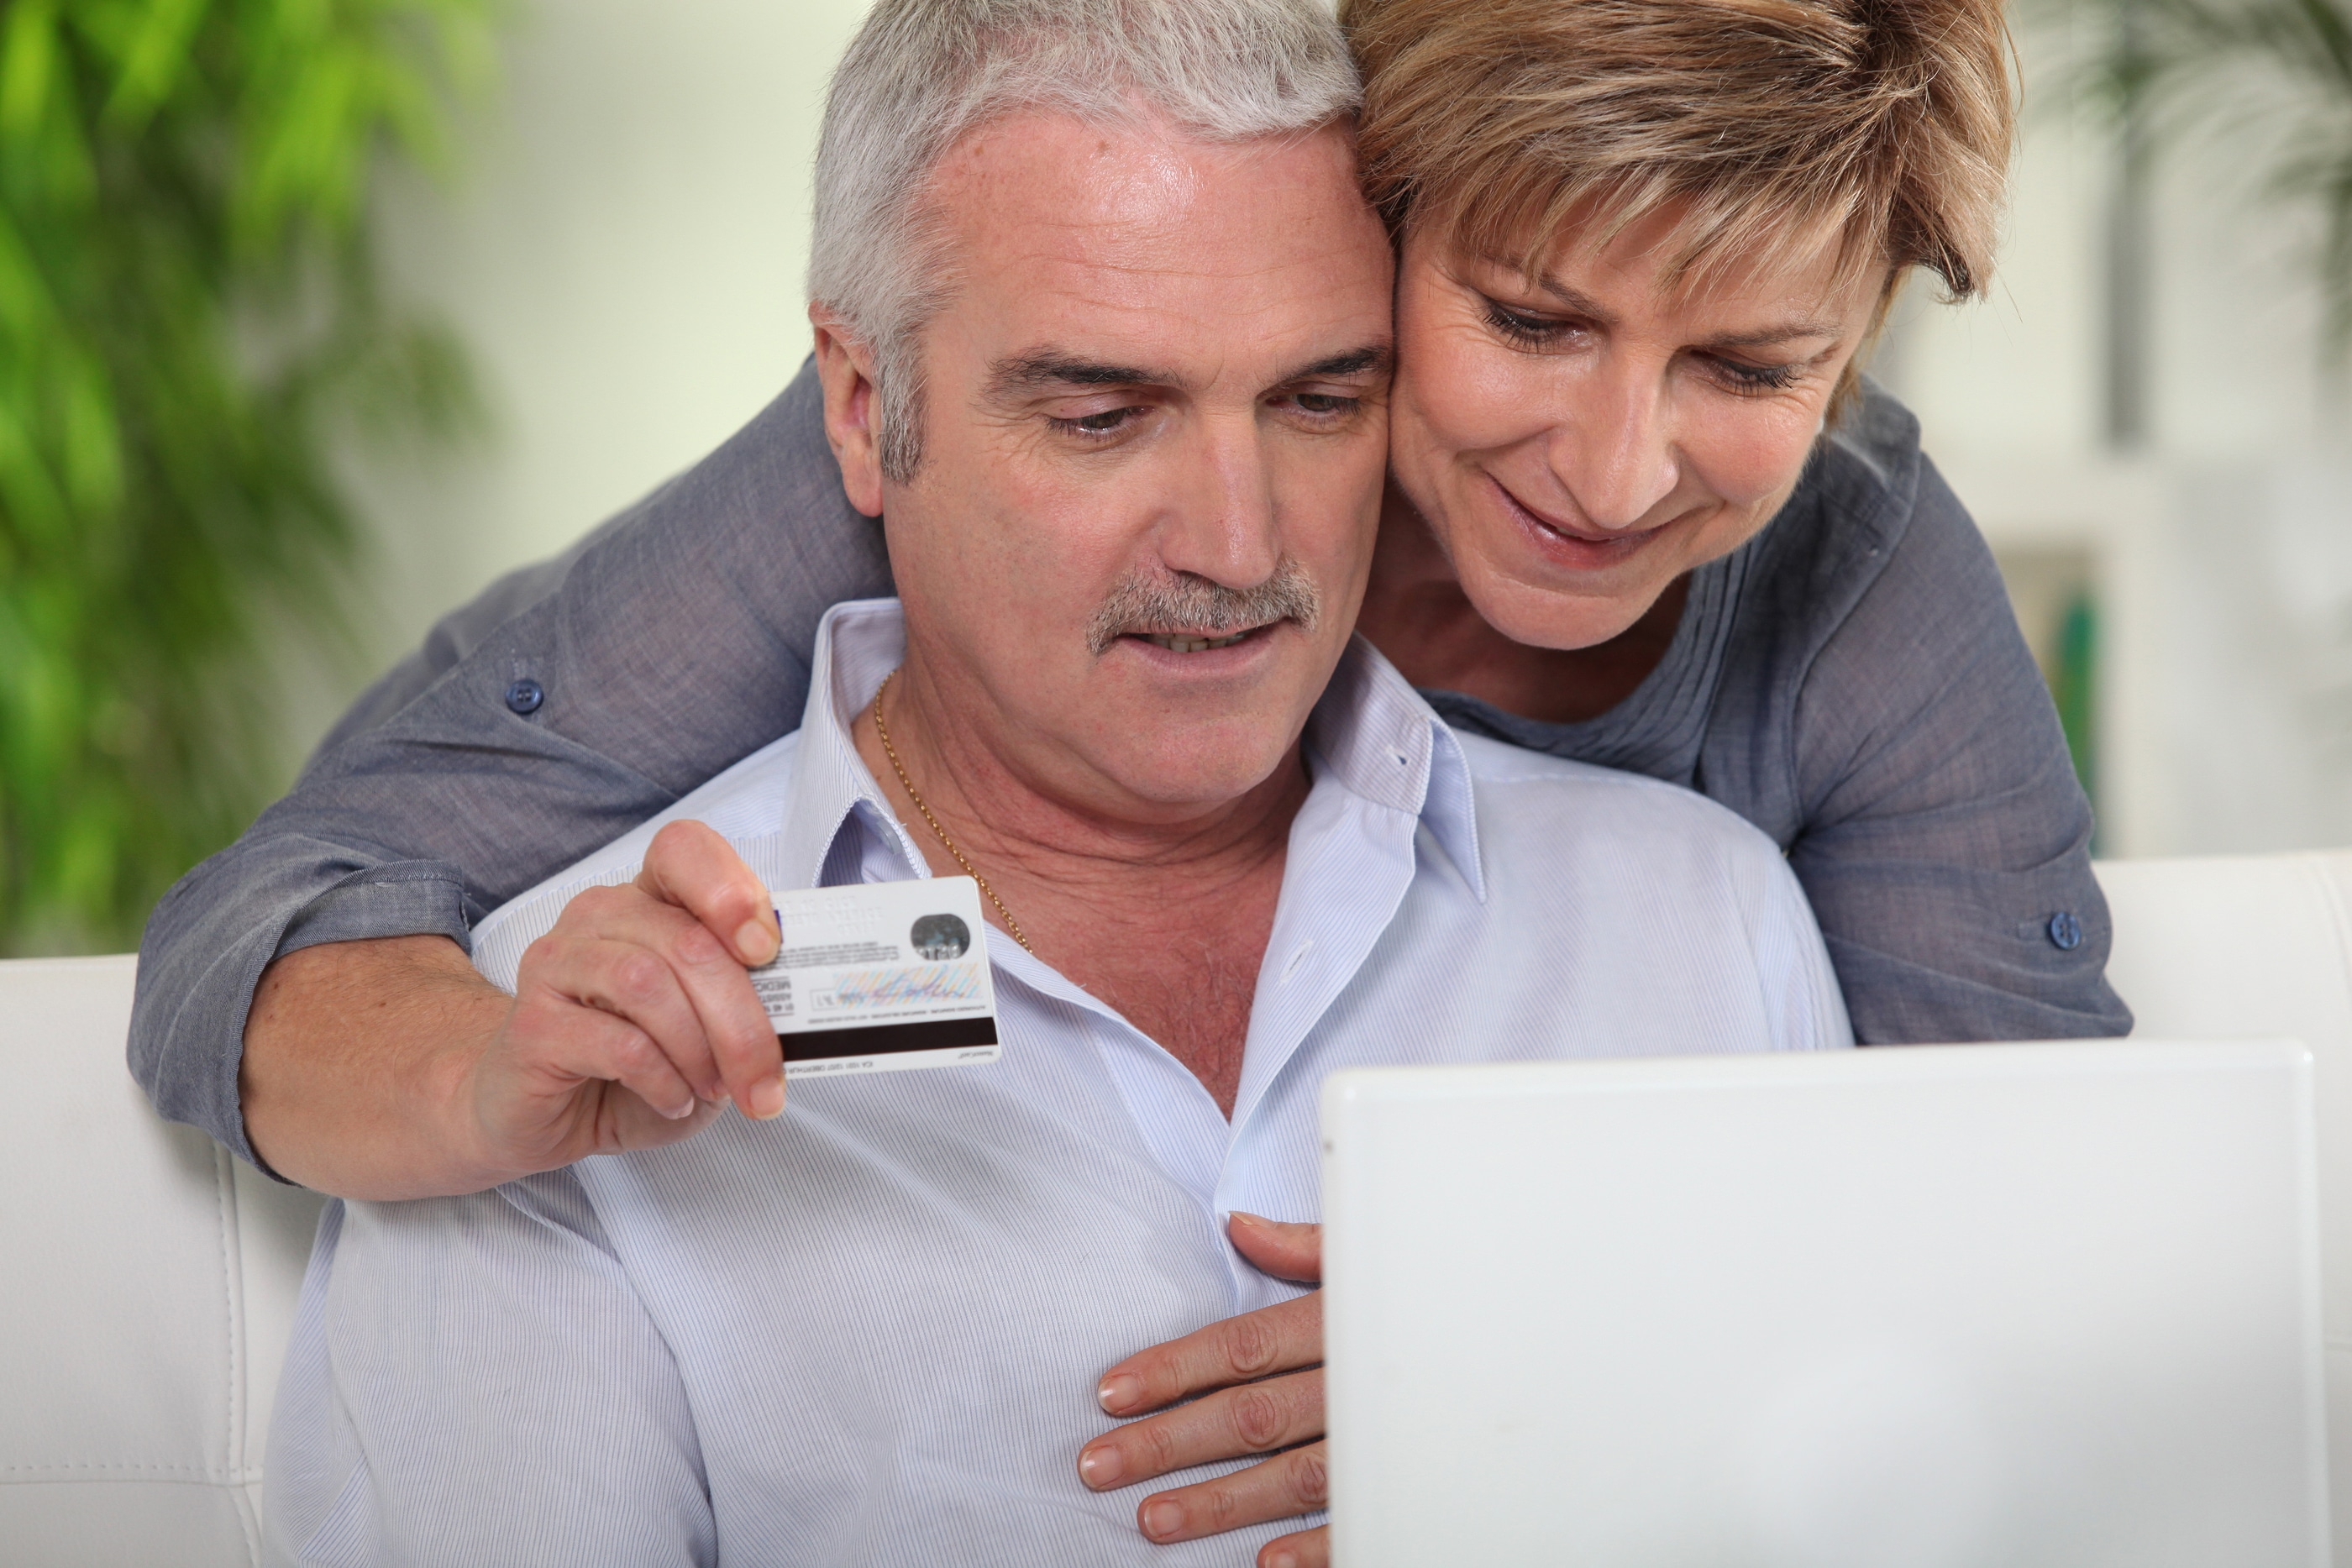 Purchasing hearing aids online has many pitfalls. Online hearing aids are a risky purchase.